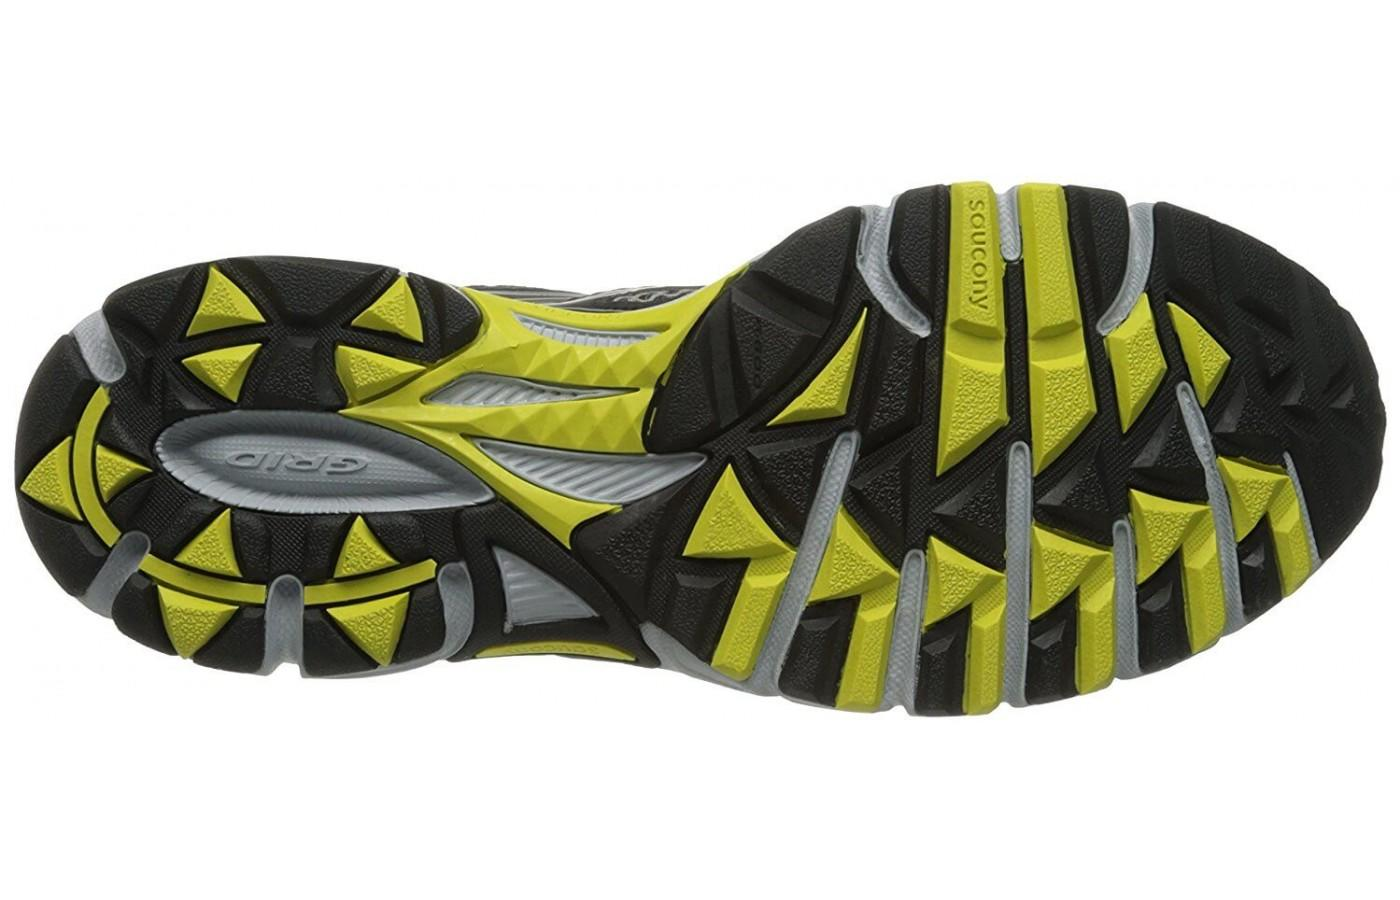 the Saucony Cohesion TR 8 has triangular lugs that give it good traction on many types of surfaces